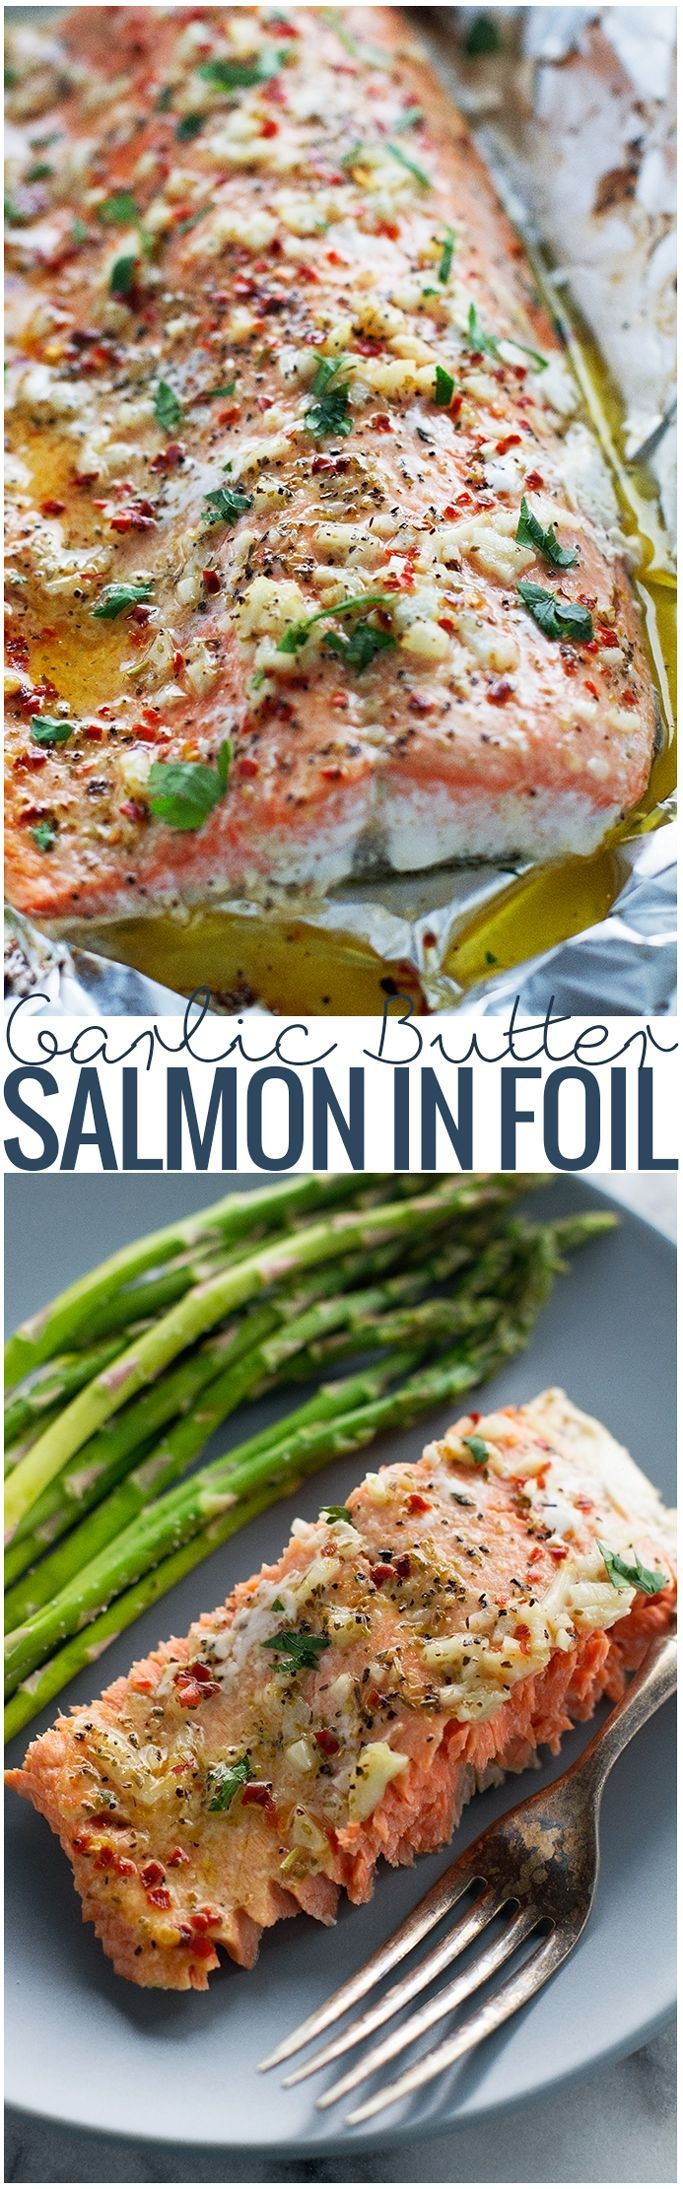 parka Lemon Garlic Butter Baked Salmon in Foil   This recipe takes less than 30 minutes and is perfect for weeknight dinners   bakedsalmon  salmoninfoil  30minutemeals  bakedfish   Littlespicejar com